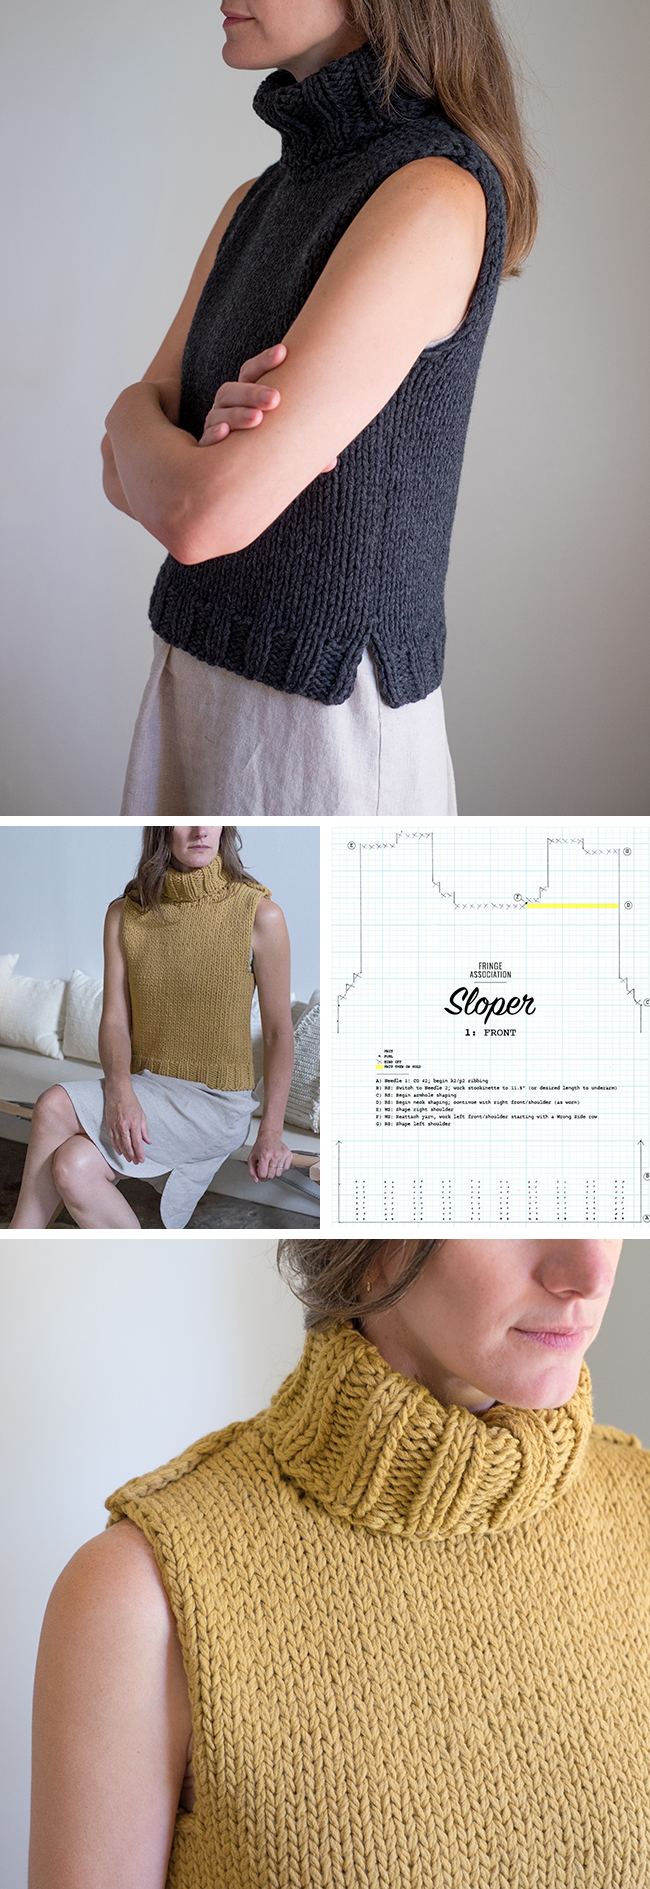 Sloper: Basic pattern for a sleeveless sweater - free pattern